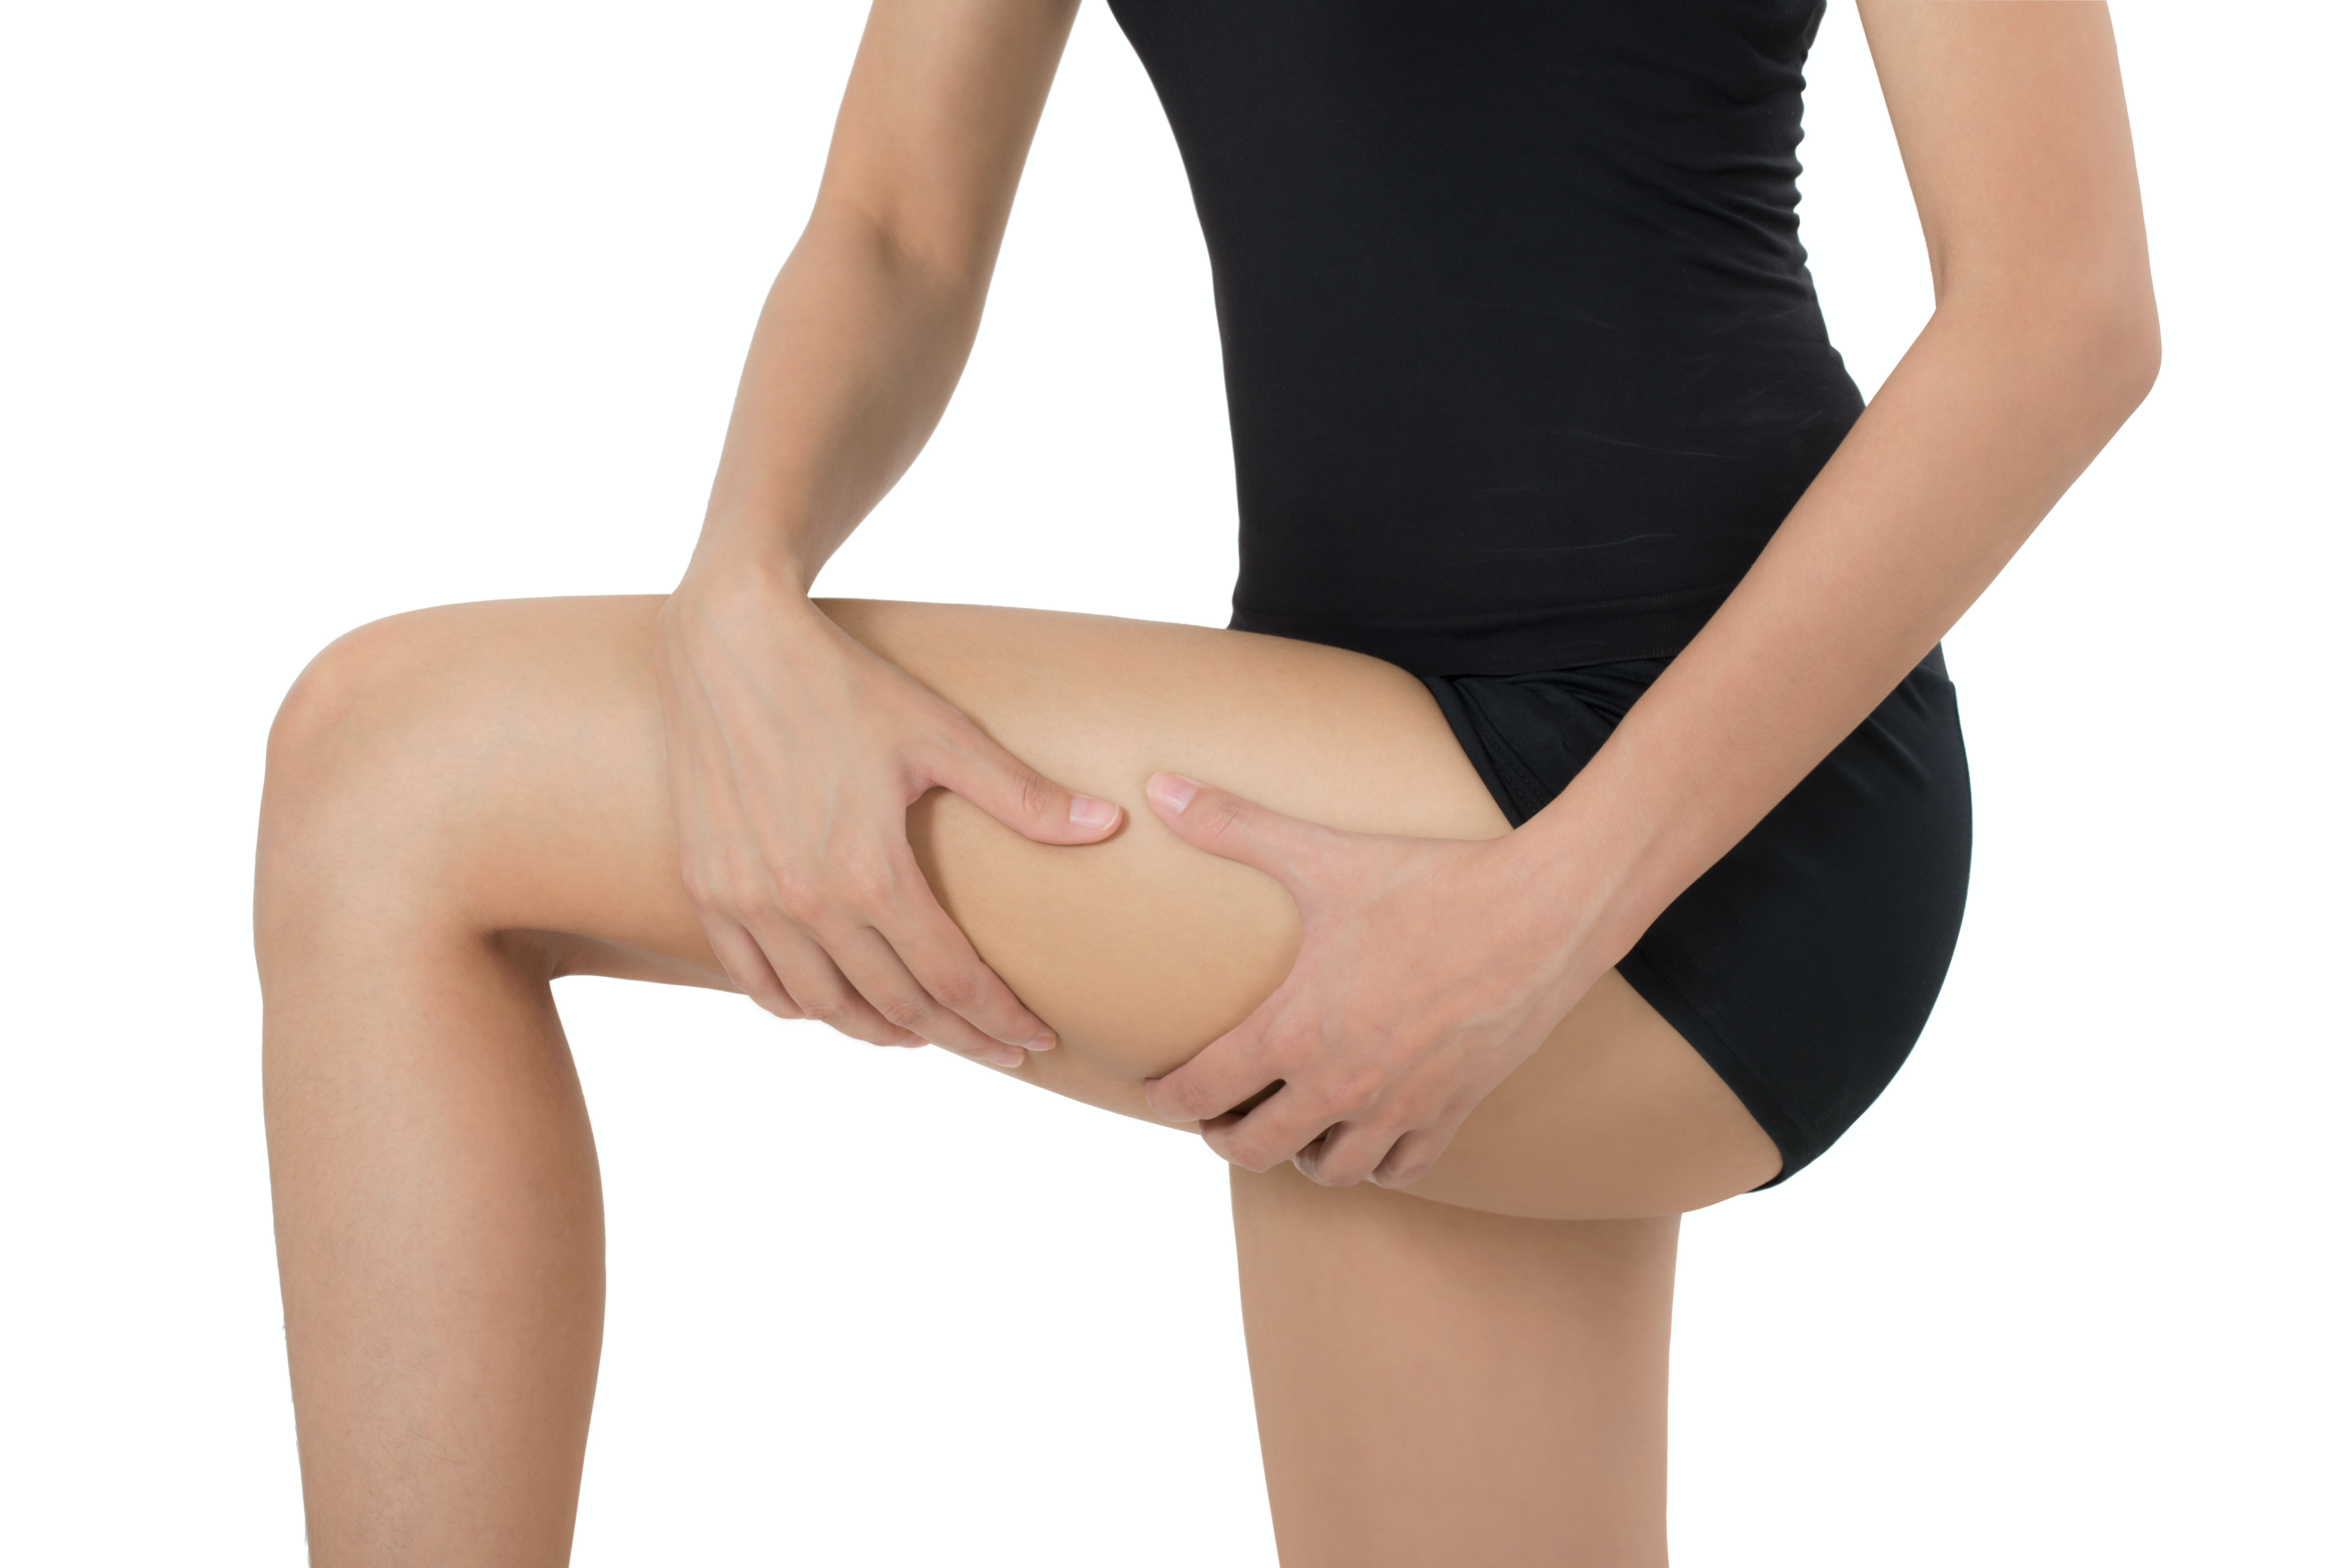 An image depicting a person suffering from pain in both thighs symptoms